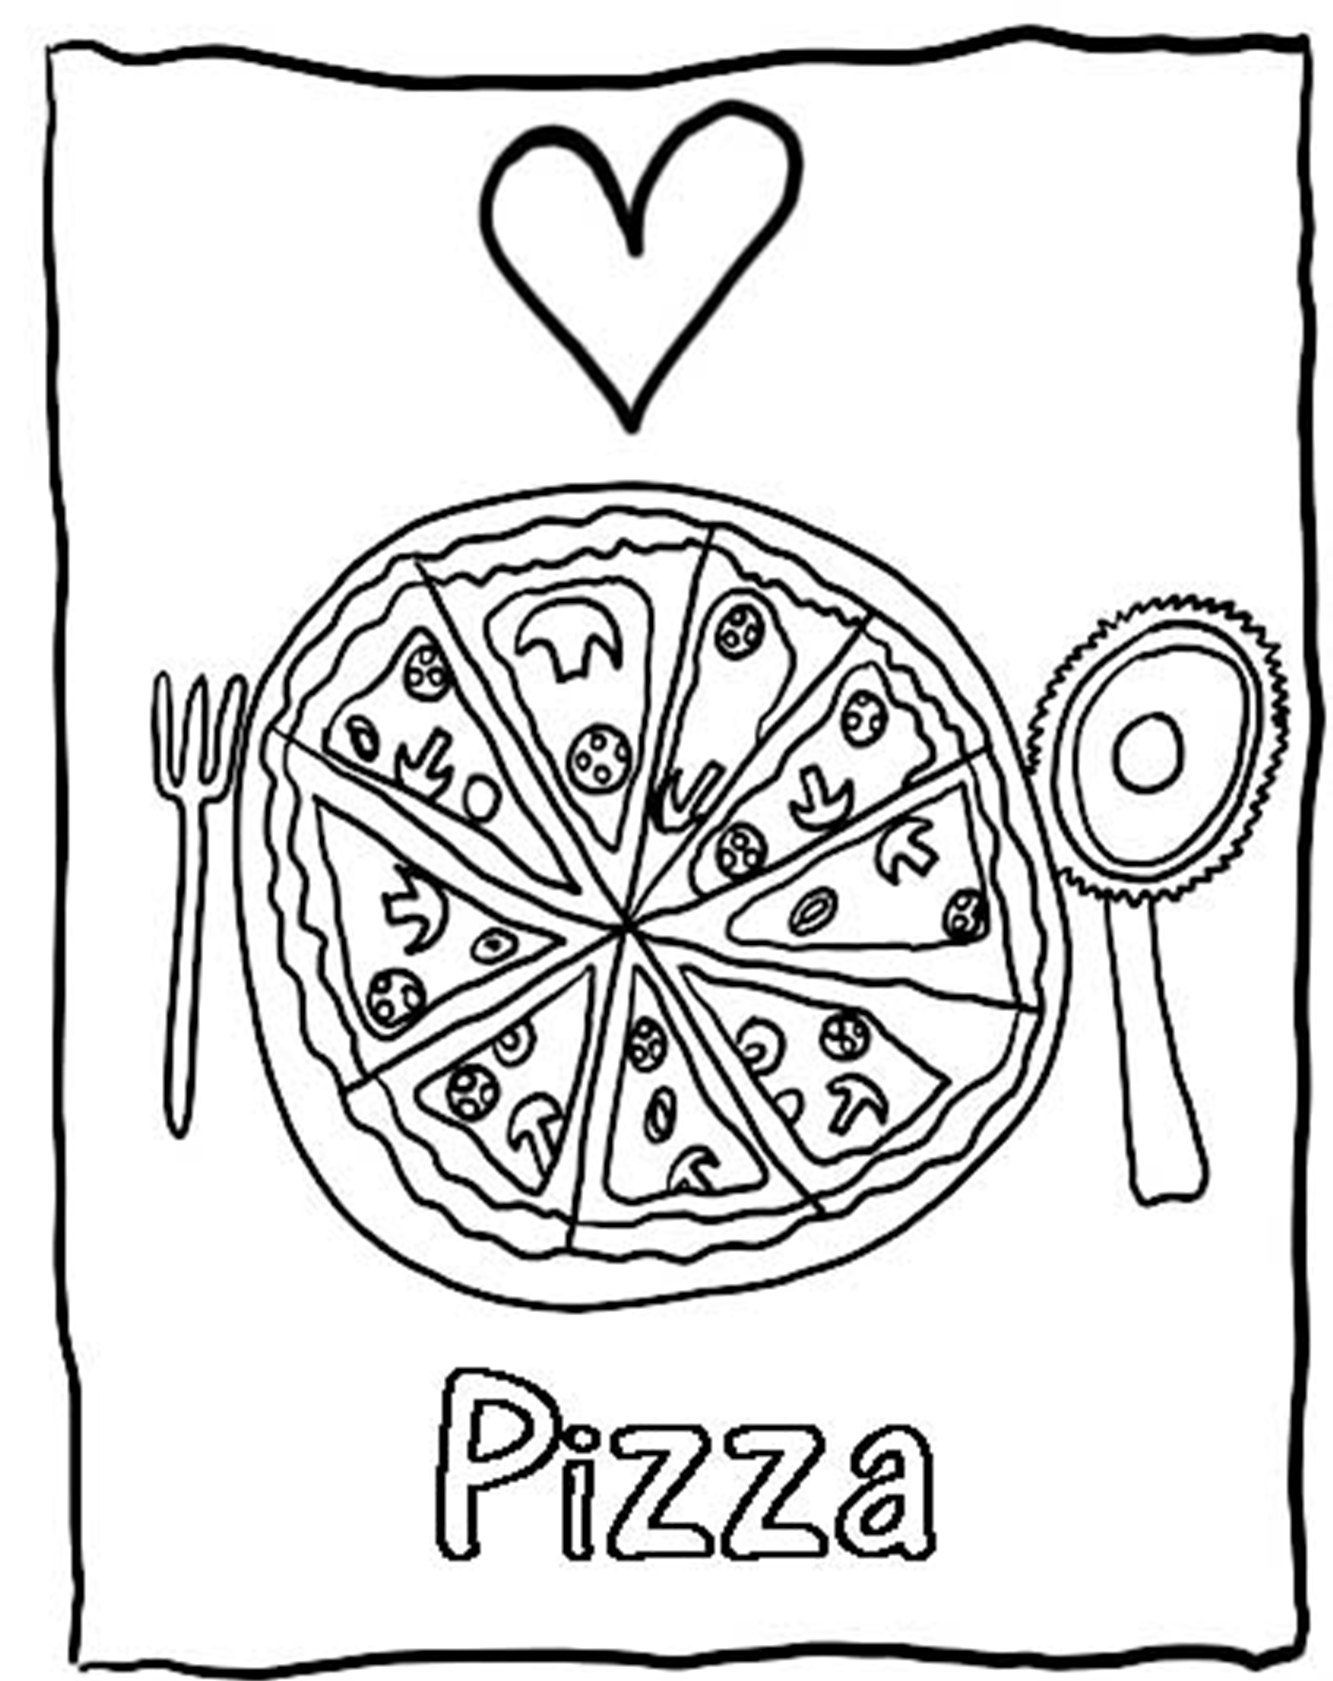 Pizza Coloring Pages Of Food | Foods Coloring pages of ...